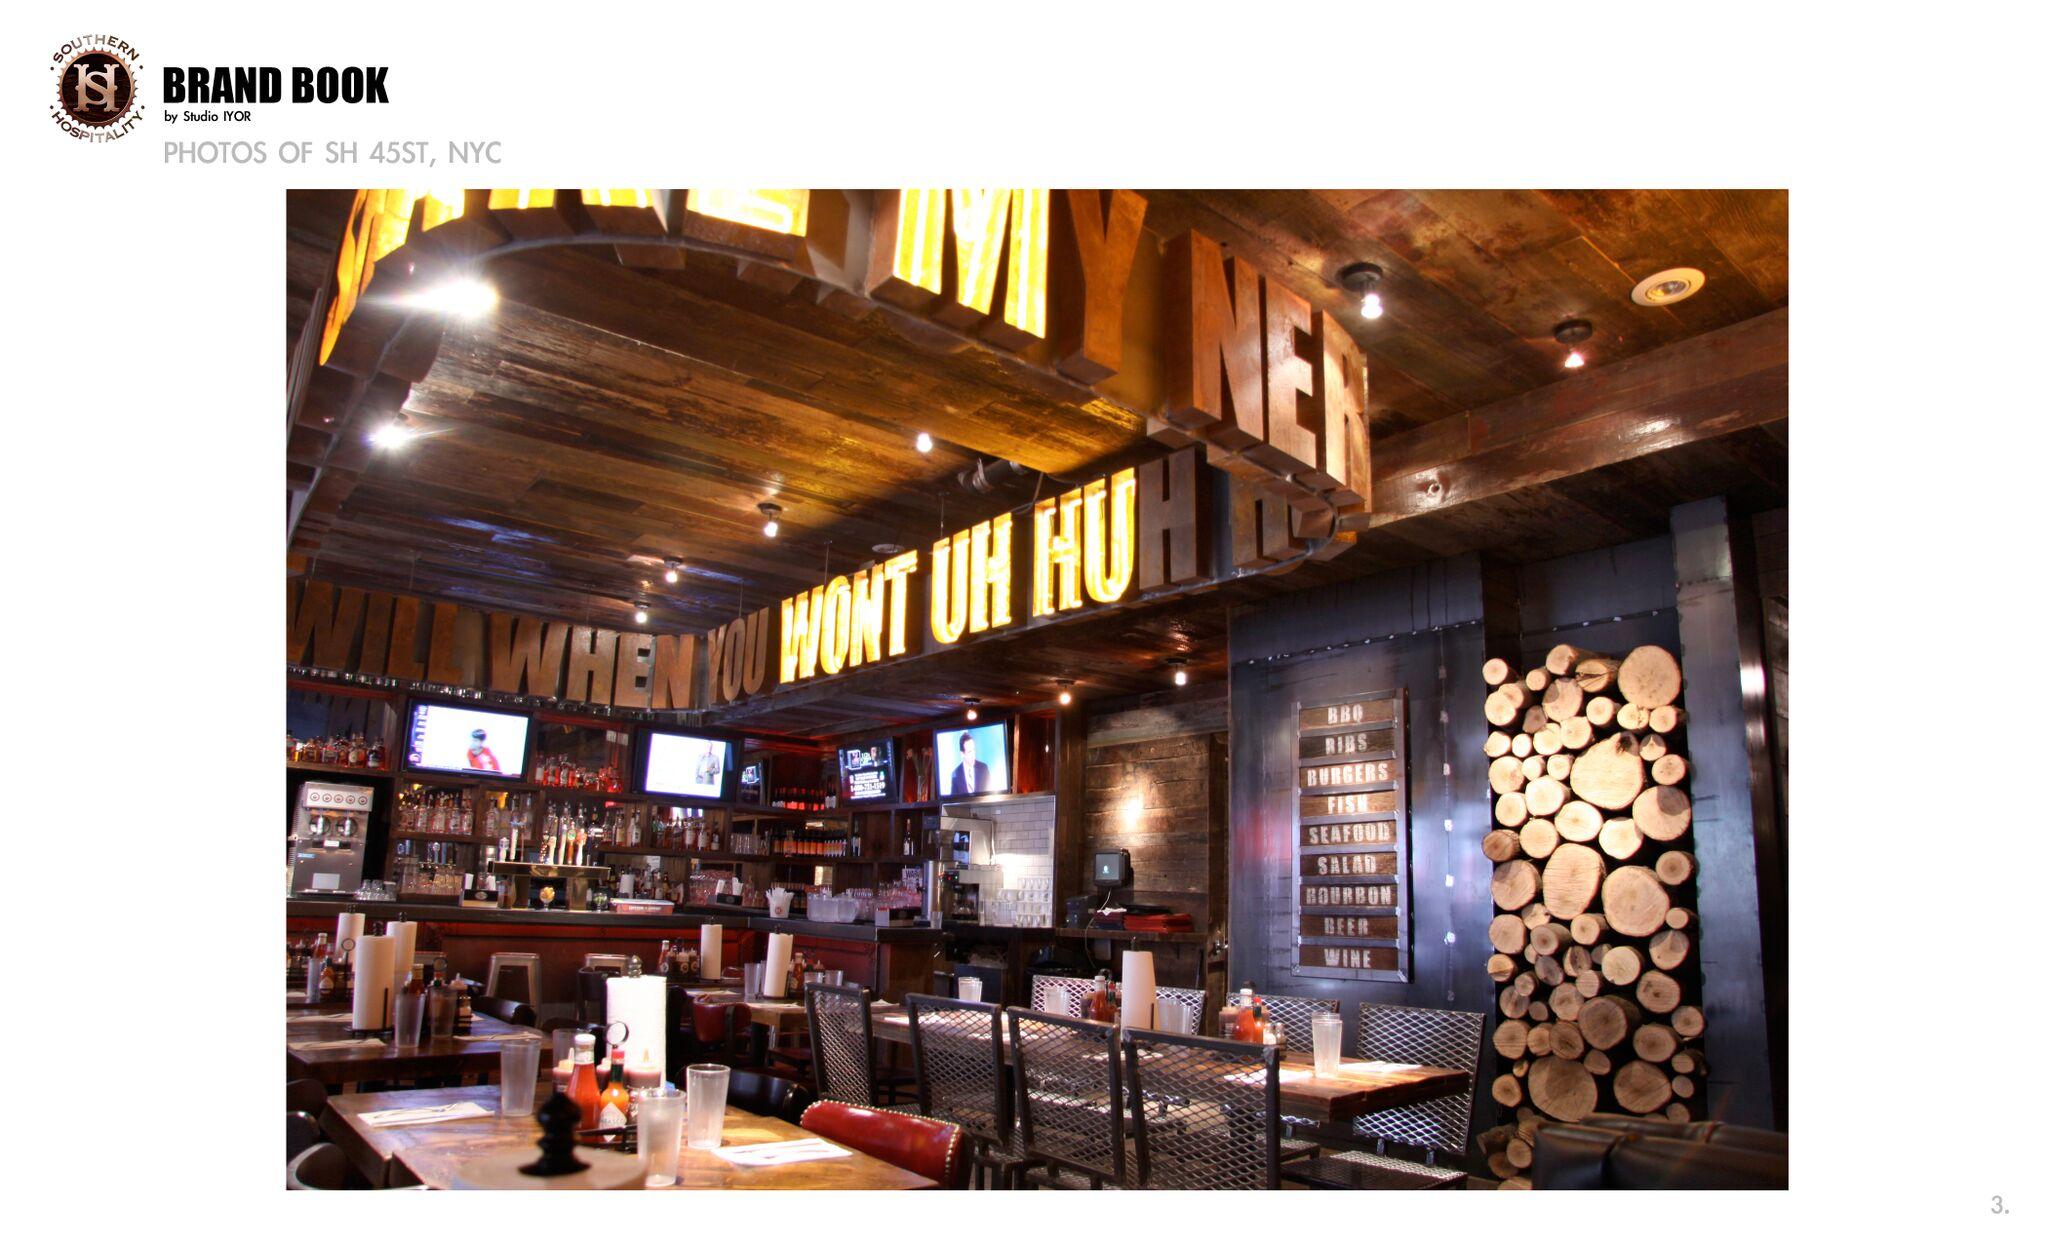 Photo #7 Main Dining Room at Southern Hospitality BBQ (Hell's Kitchen)